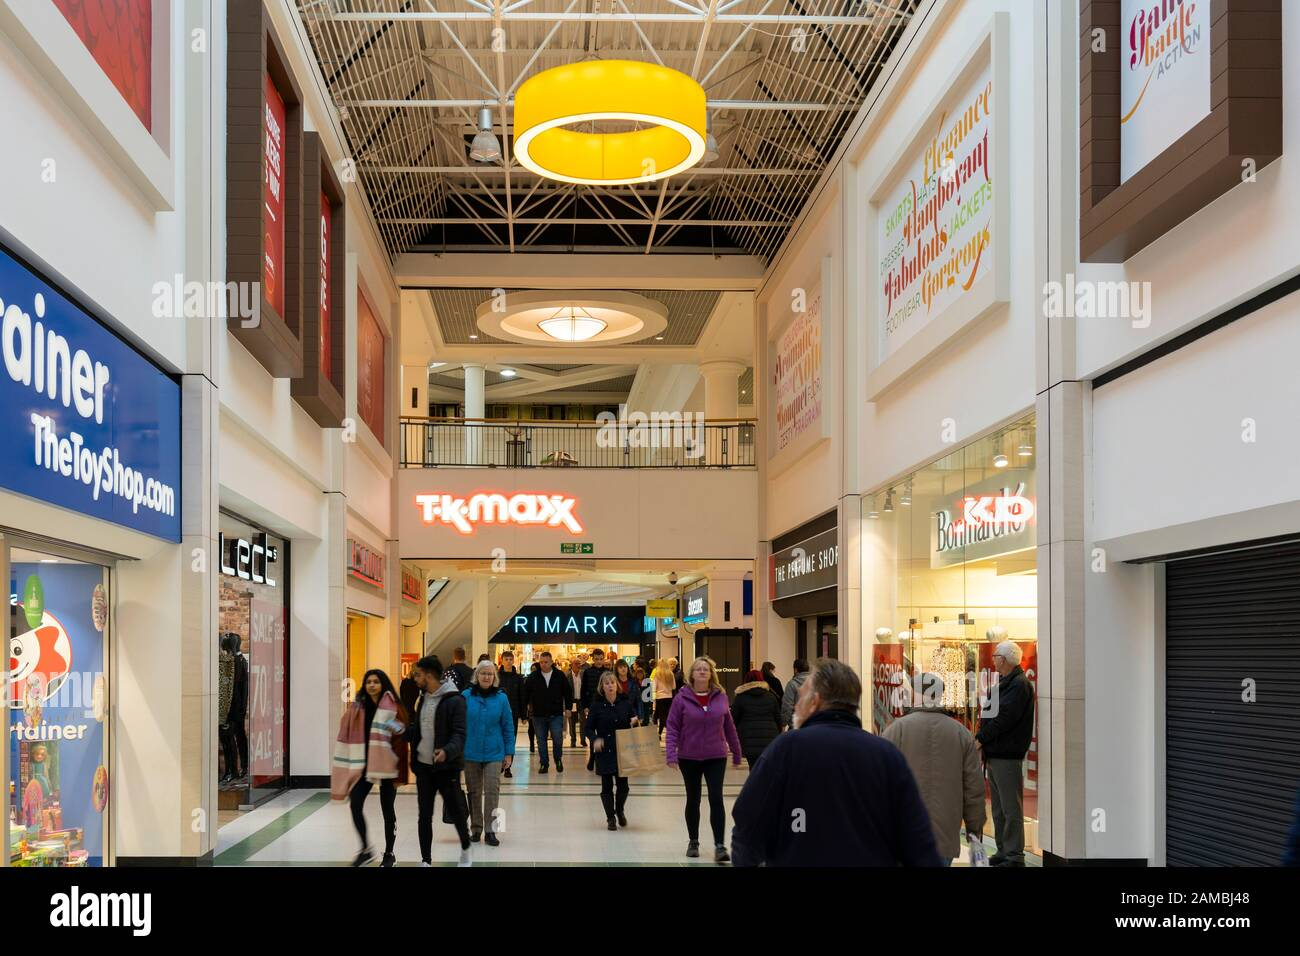 shoppers-walking-through-the-indoor-king